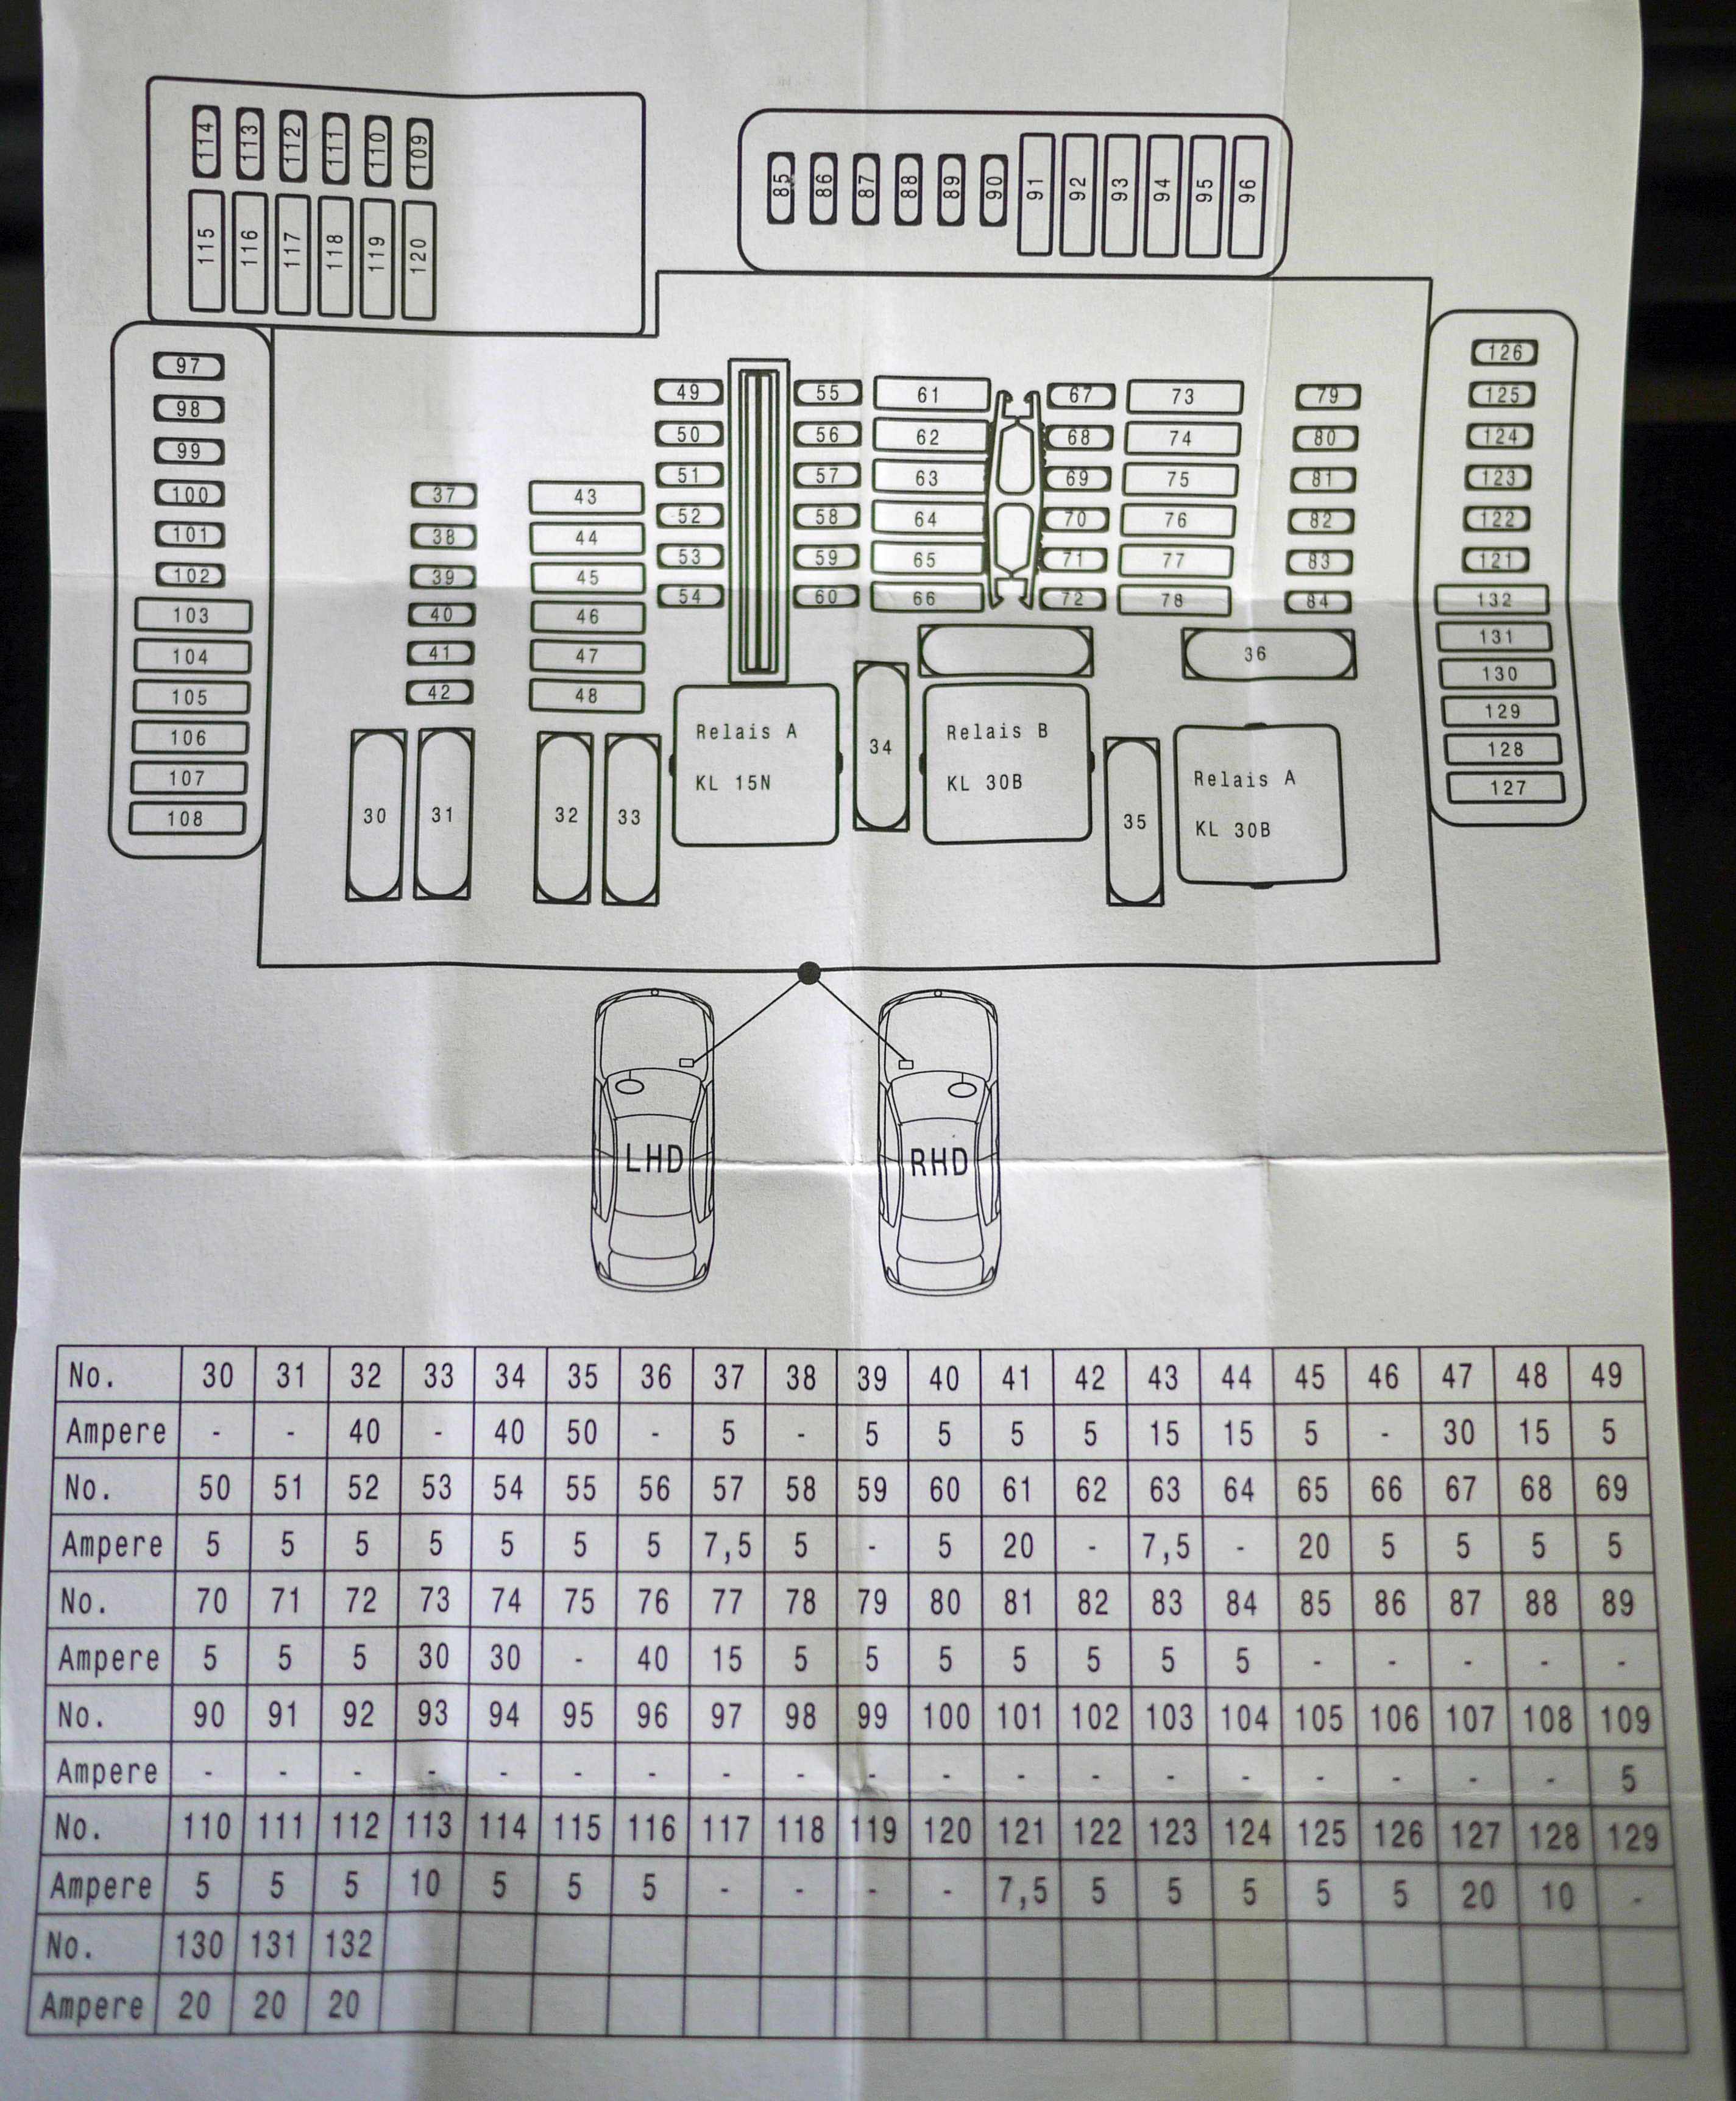 14572678859_8d7957fbb5_o fuse box schematic bmw i3 forum 2016 Volvo XC90 Interior at mifinder.co